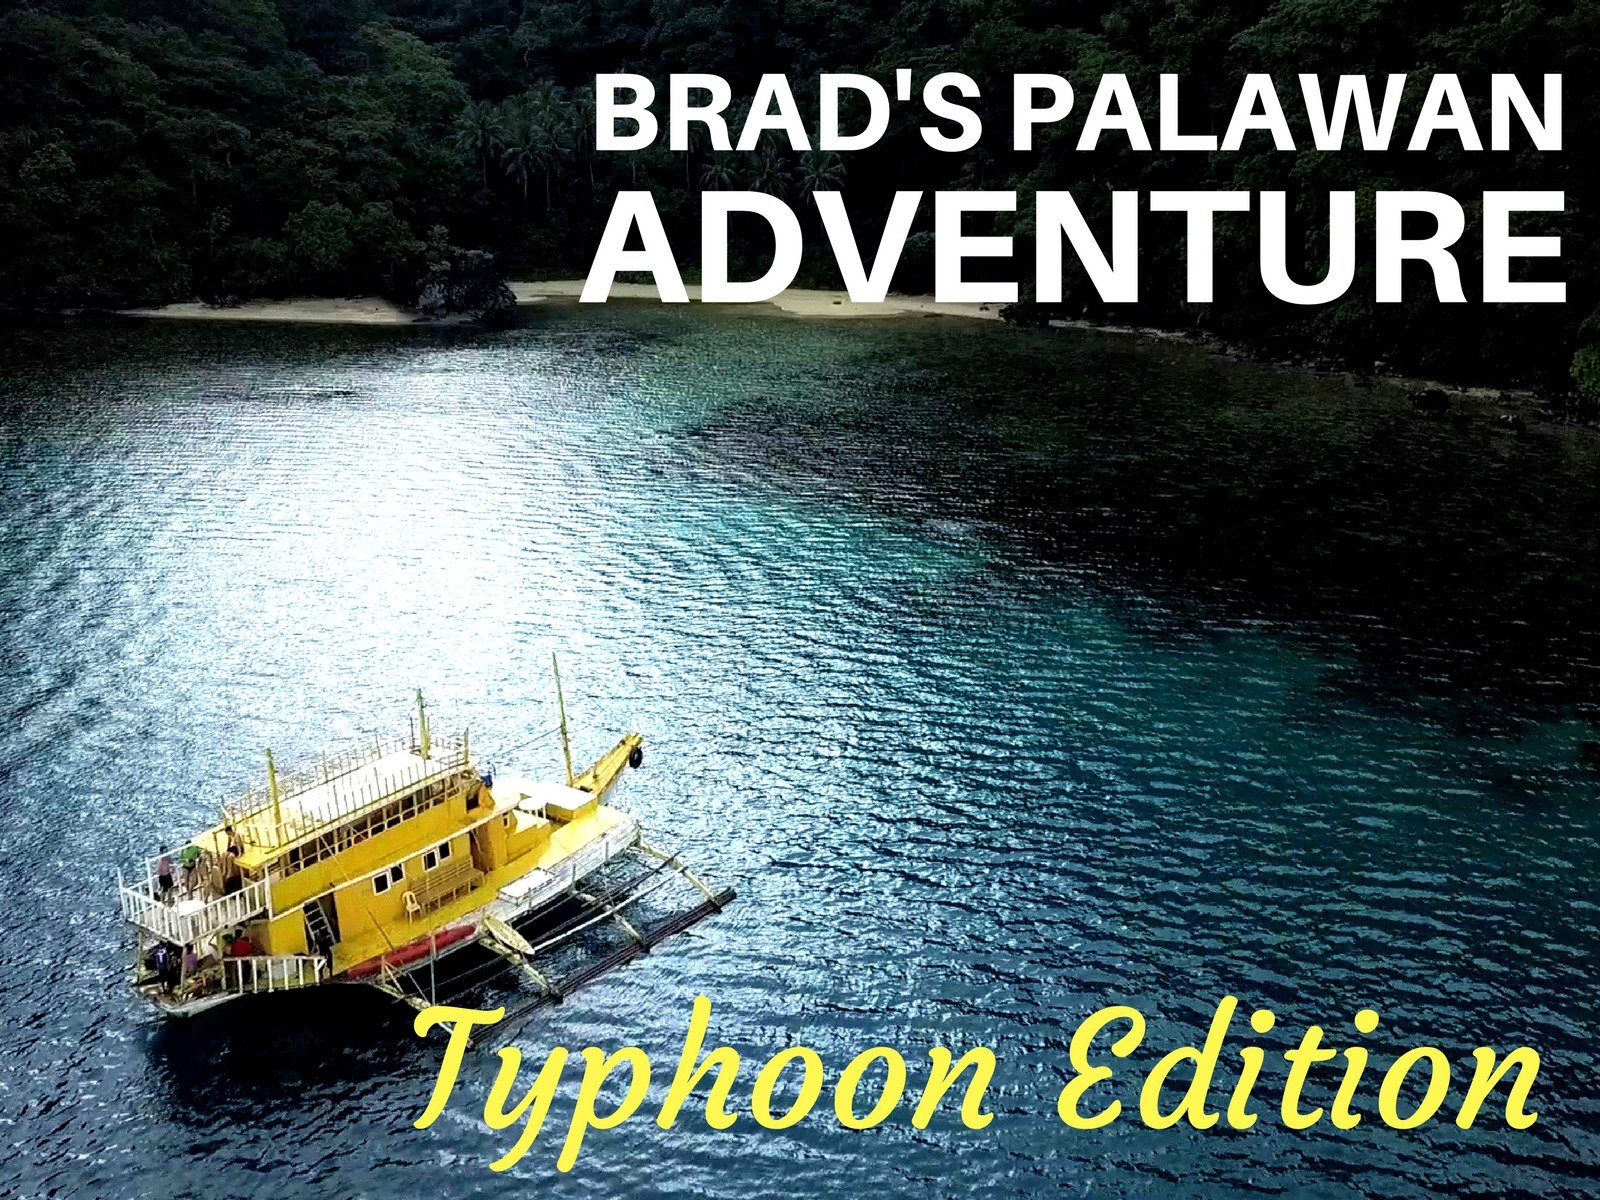 Brad's Palawan Adventure: Typhoon Edition - Season 1